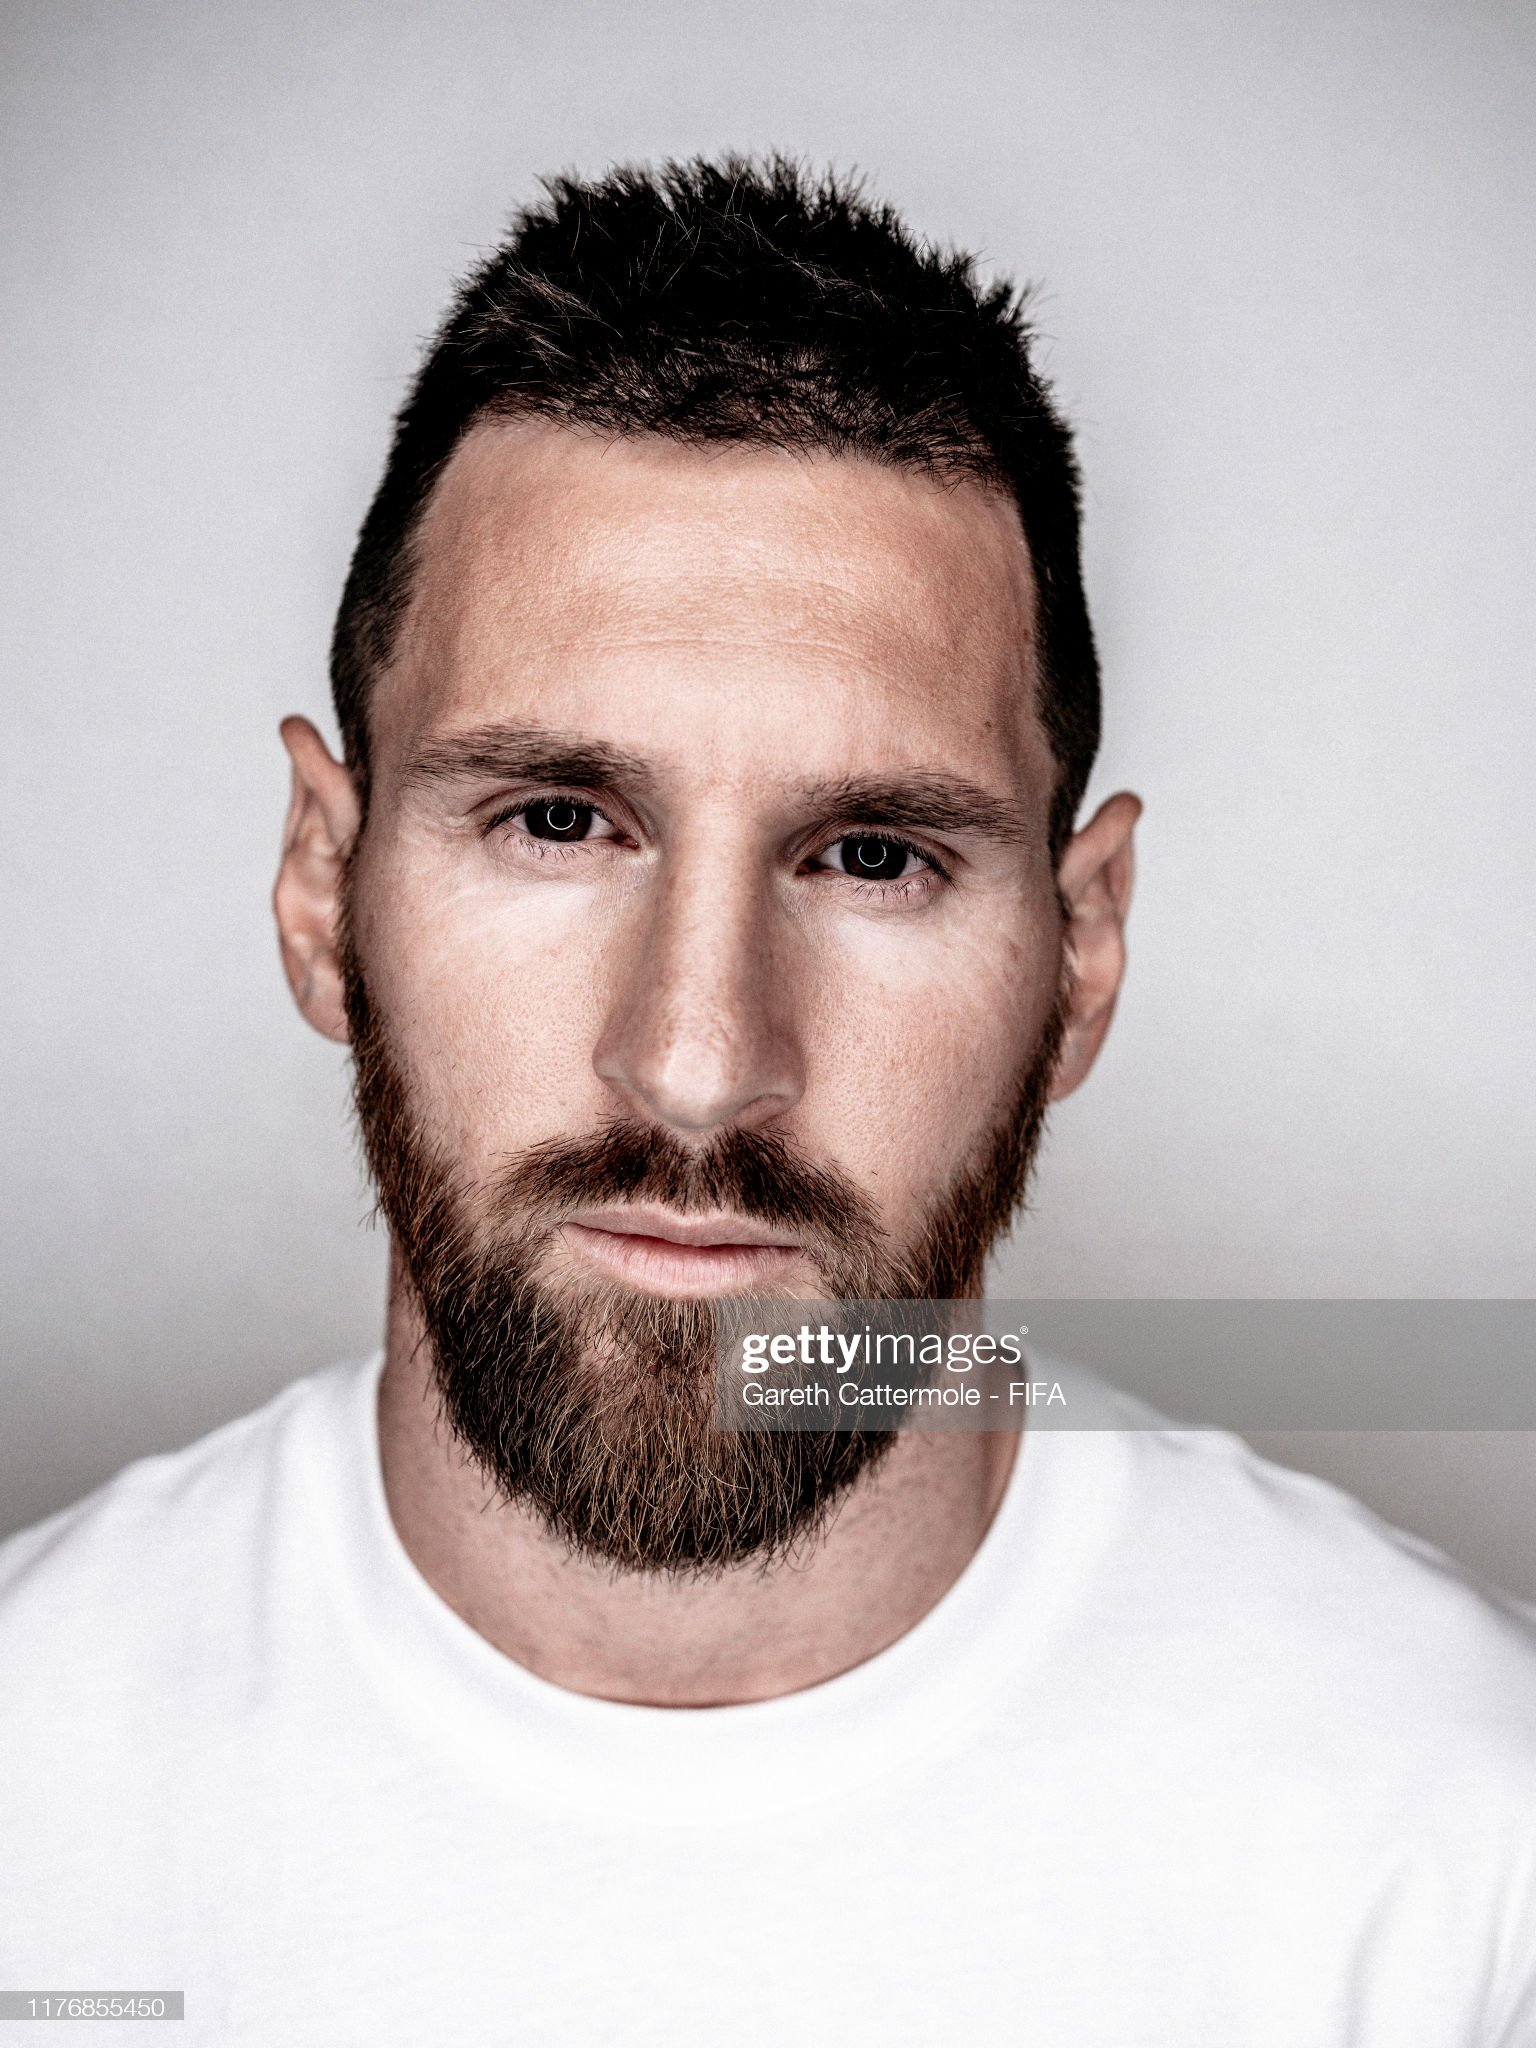 The Best FIFA Football Awards 2019 Lionel-messi-of-fc-barcelona-and-argentina-poses-for-a-portrait-ahead-picture-id1176855450?s=2048x2048